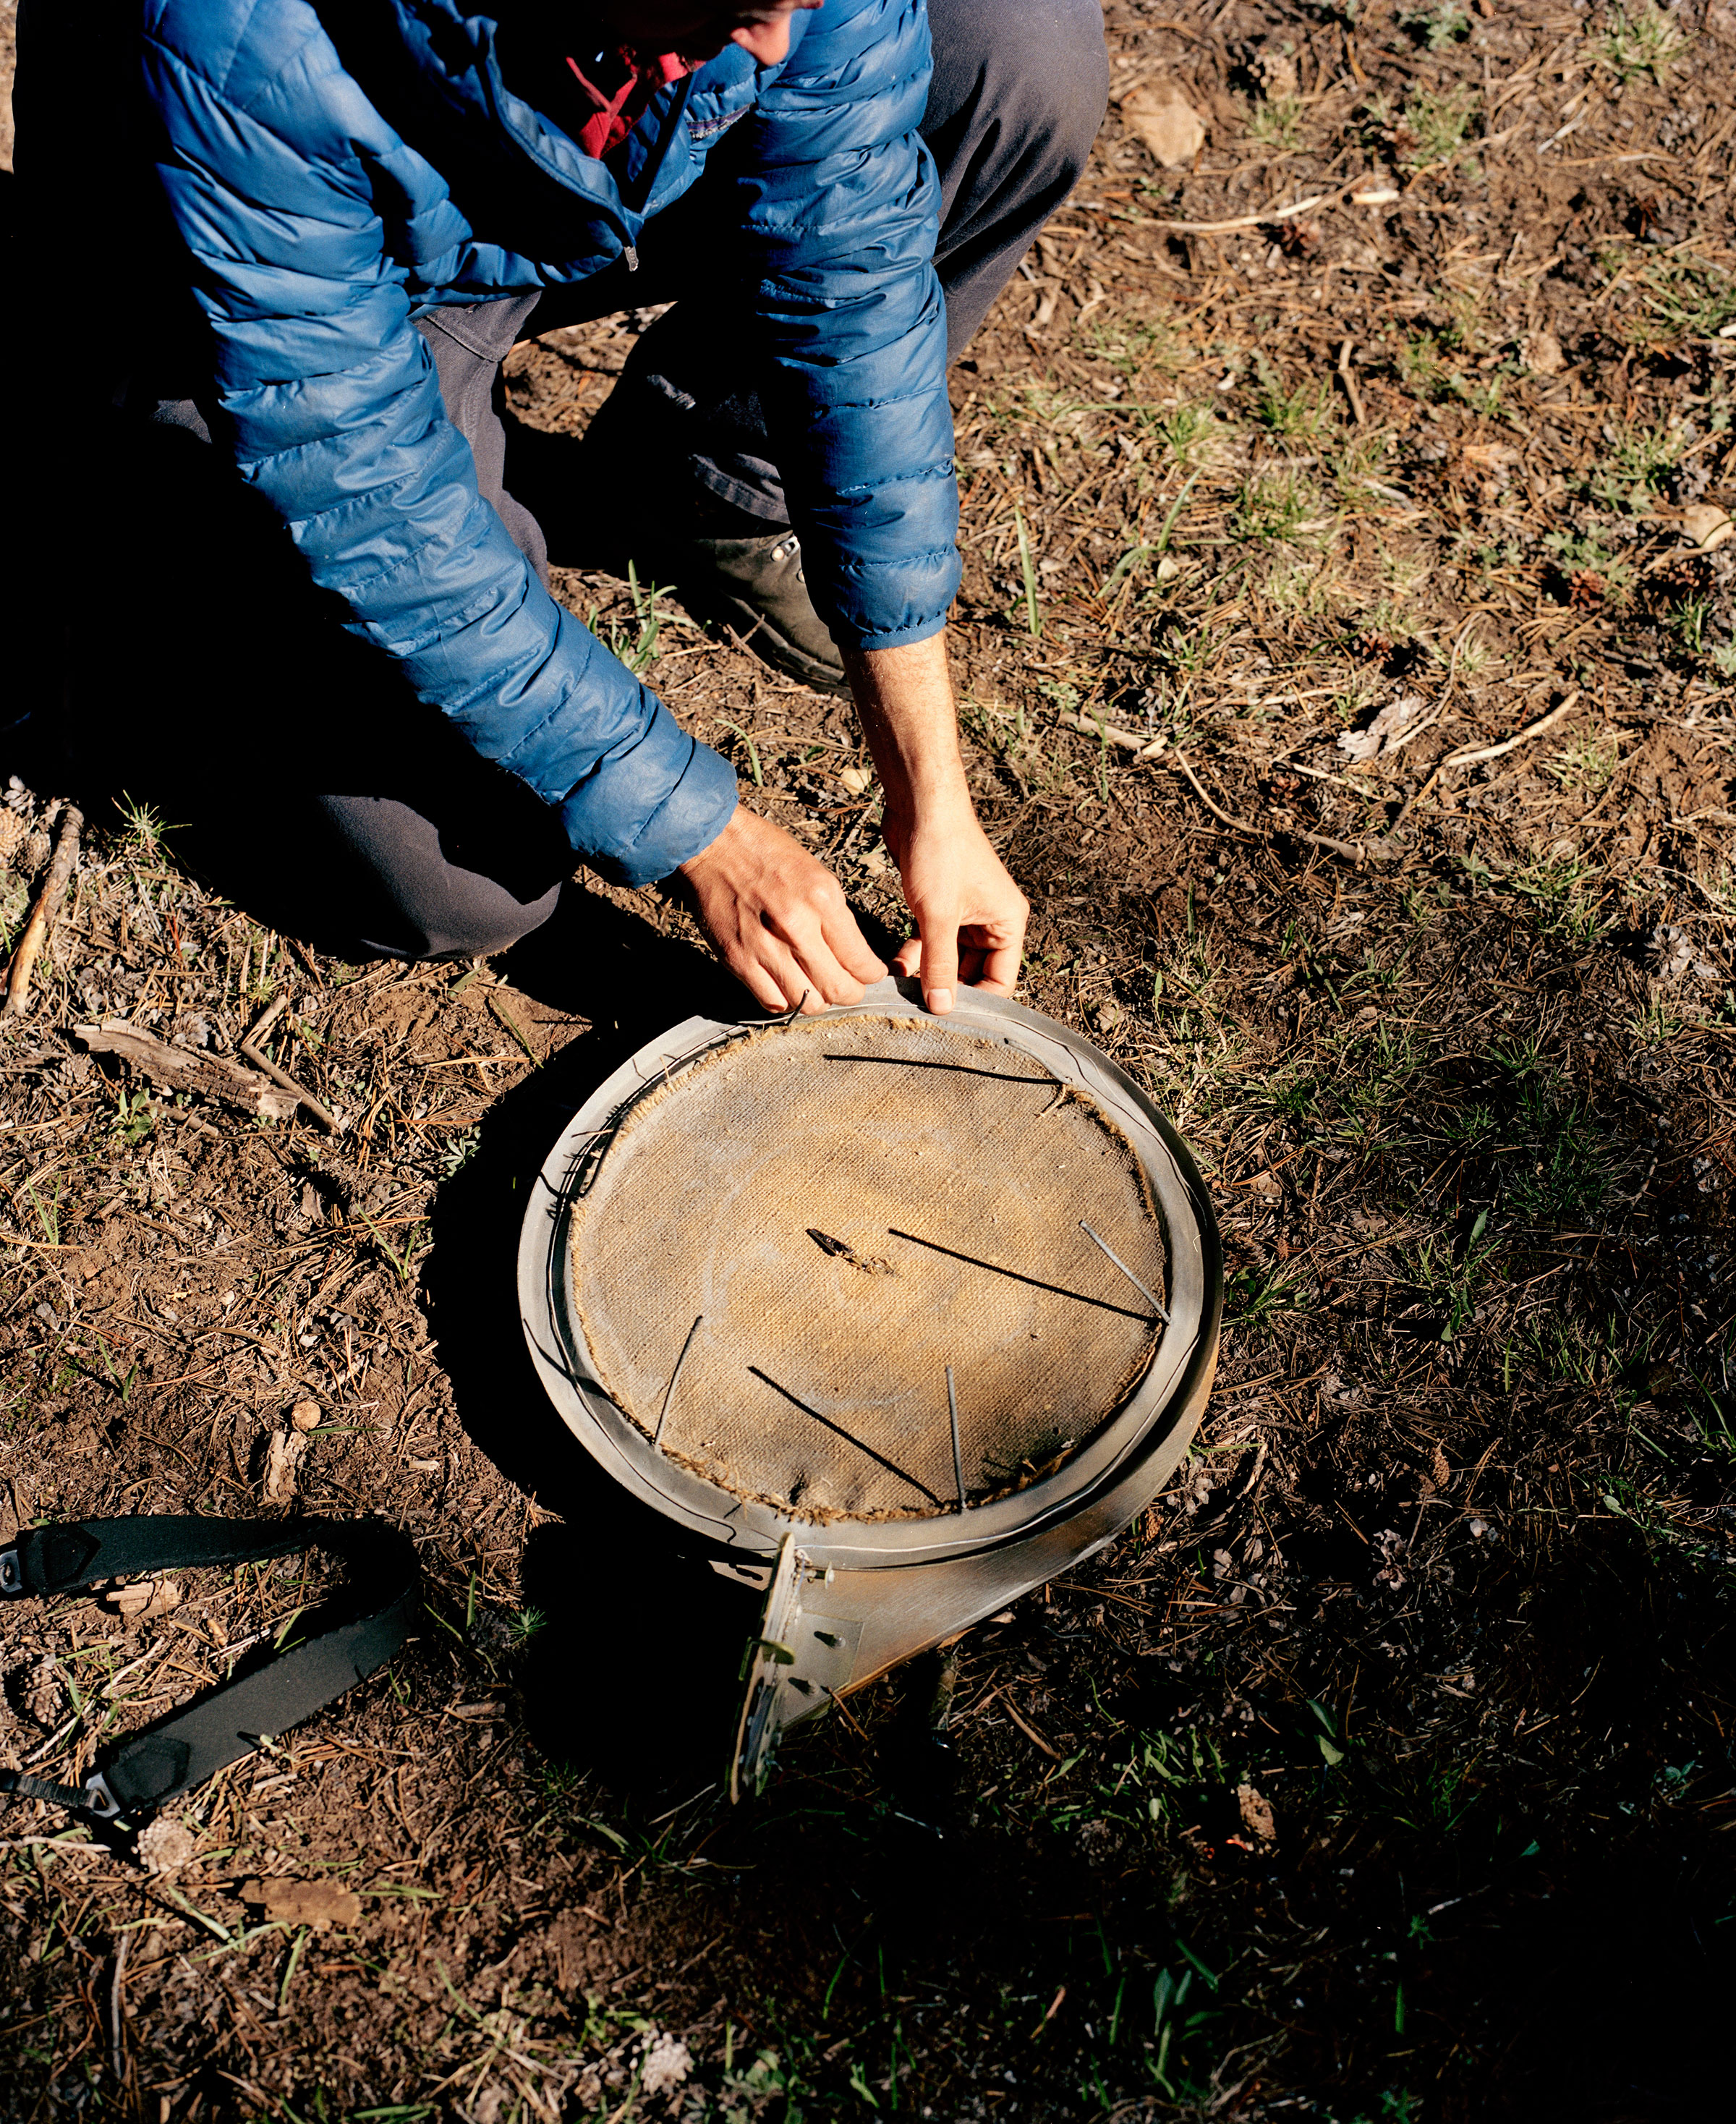 A pan trap used to catch owls for banding. Jake Stangel